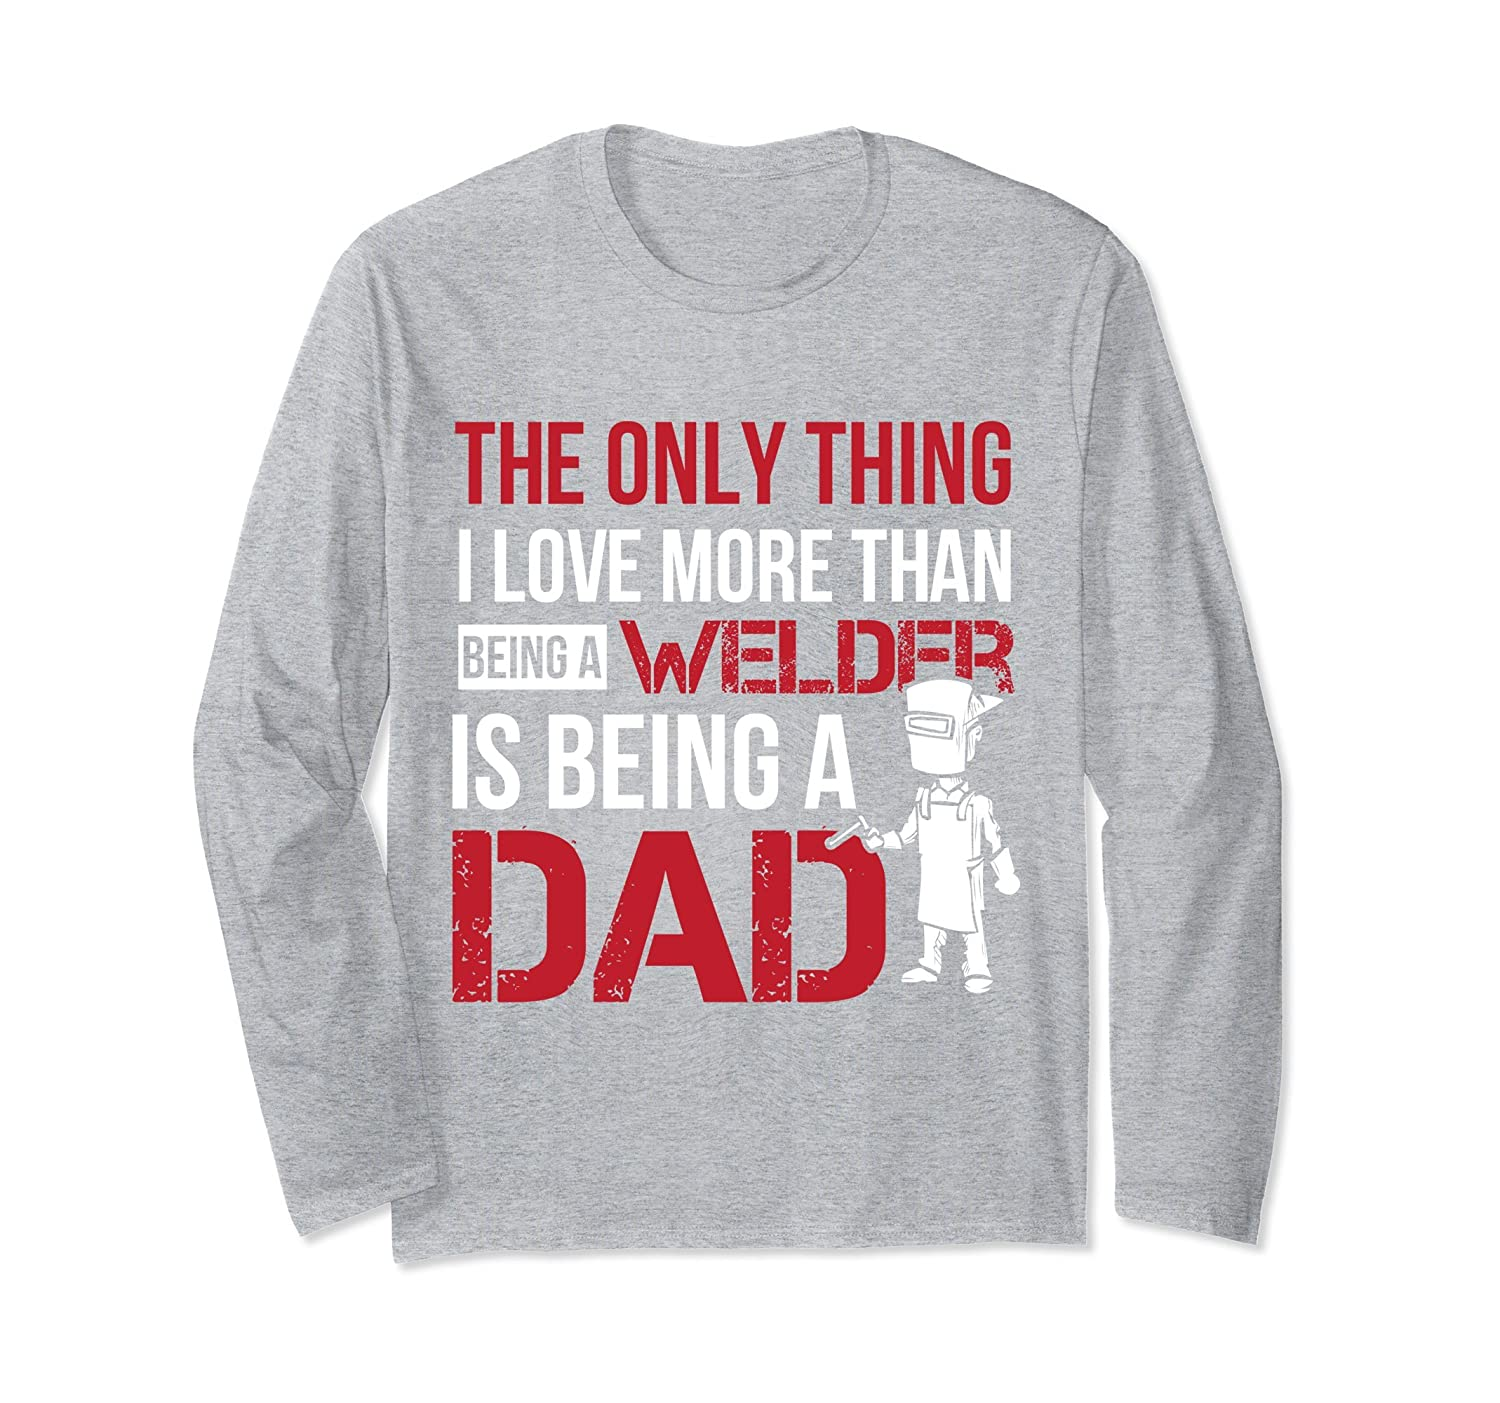 3b6789be Welder dad shirt - Fathers day gifts - Welding long sleeves-anz ...